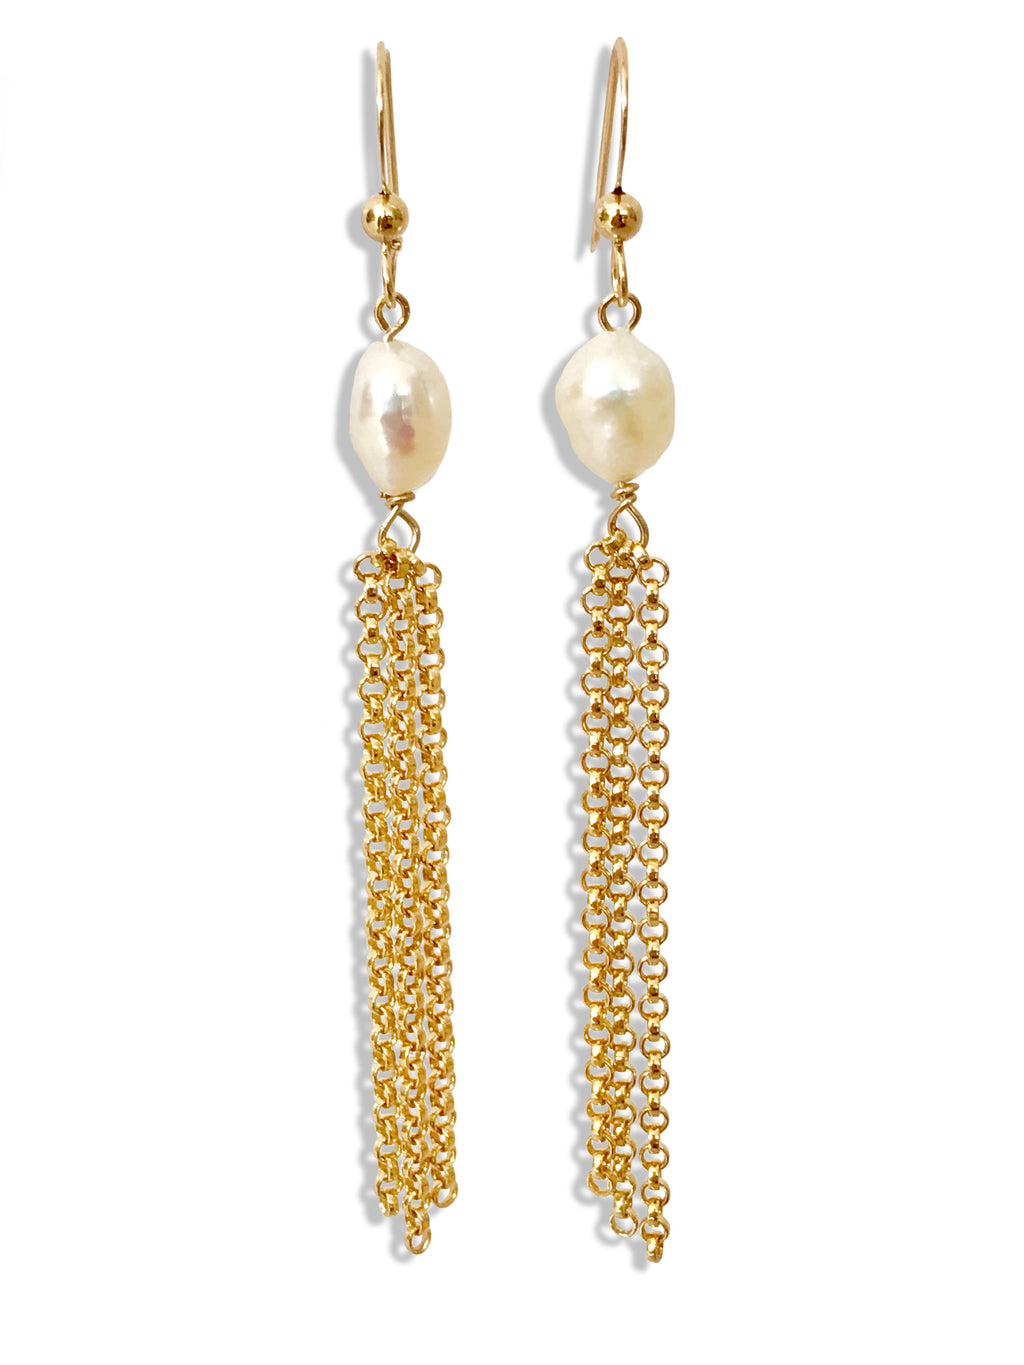 Freshwater Pearl 14K Gold Filled Tassle Earrings